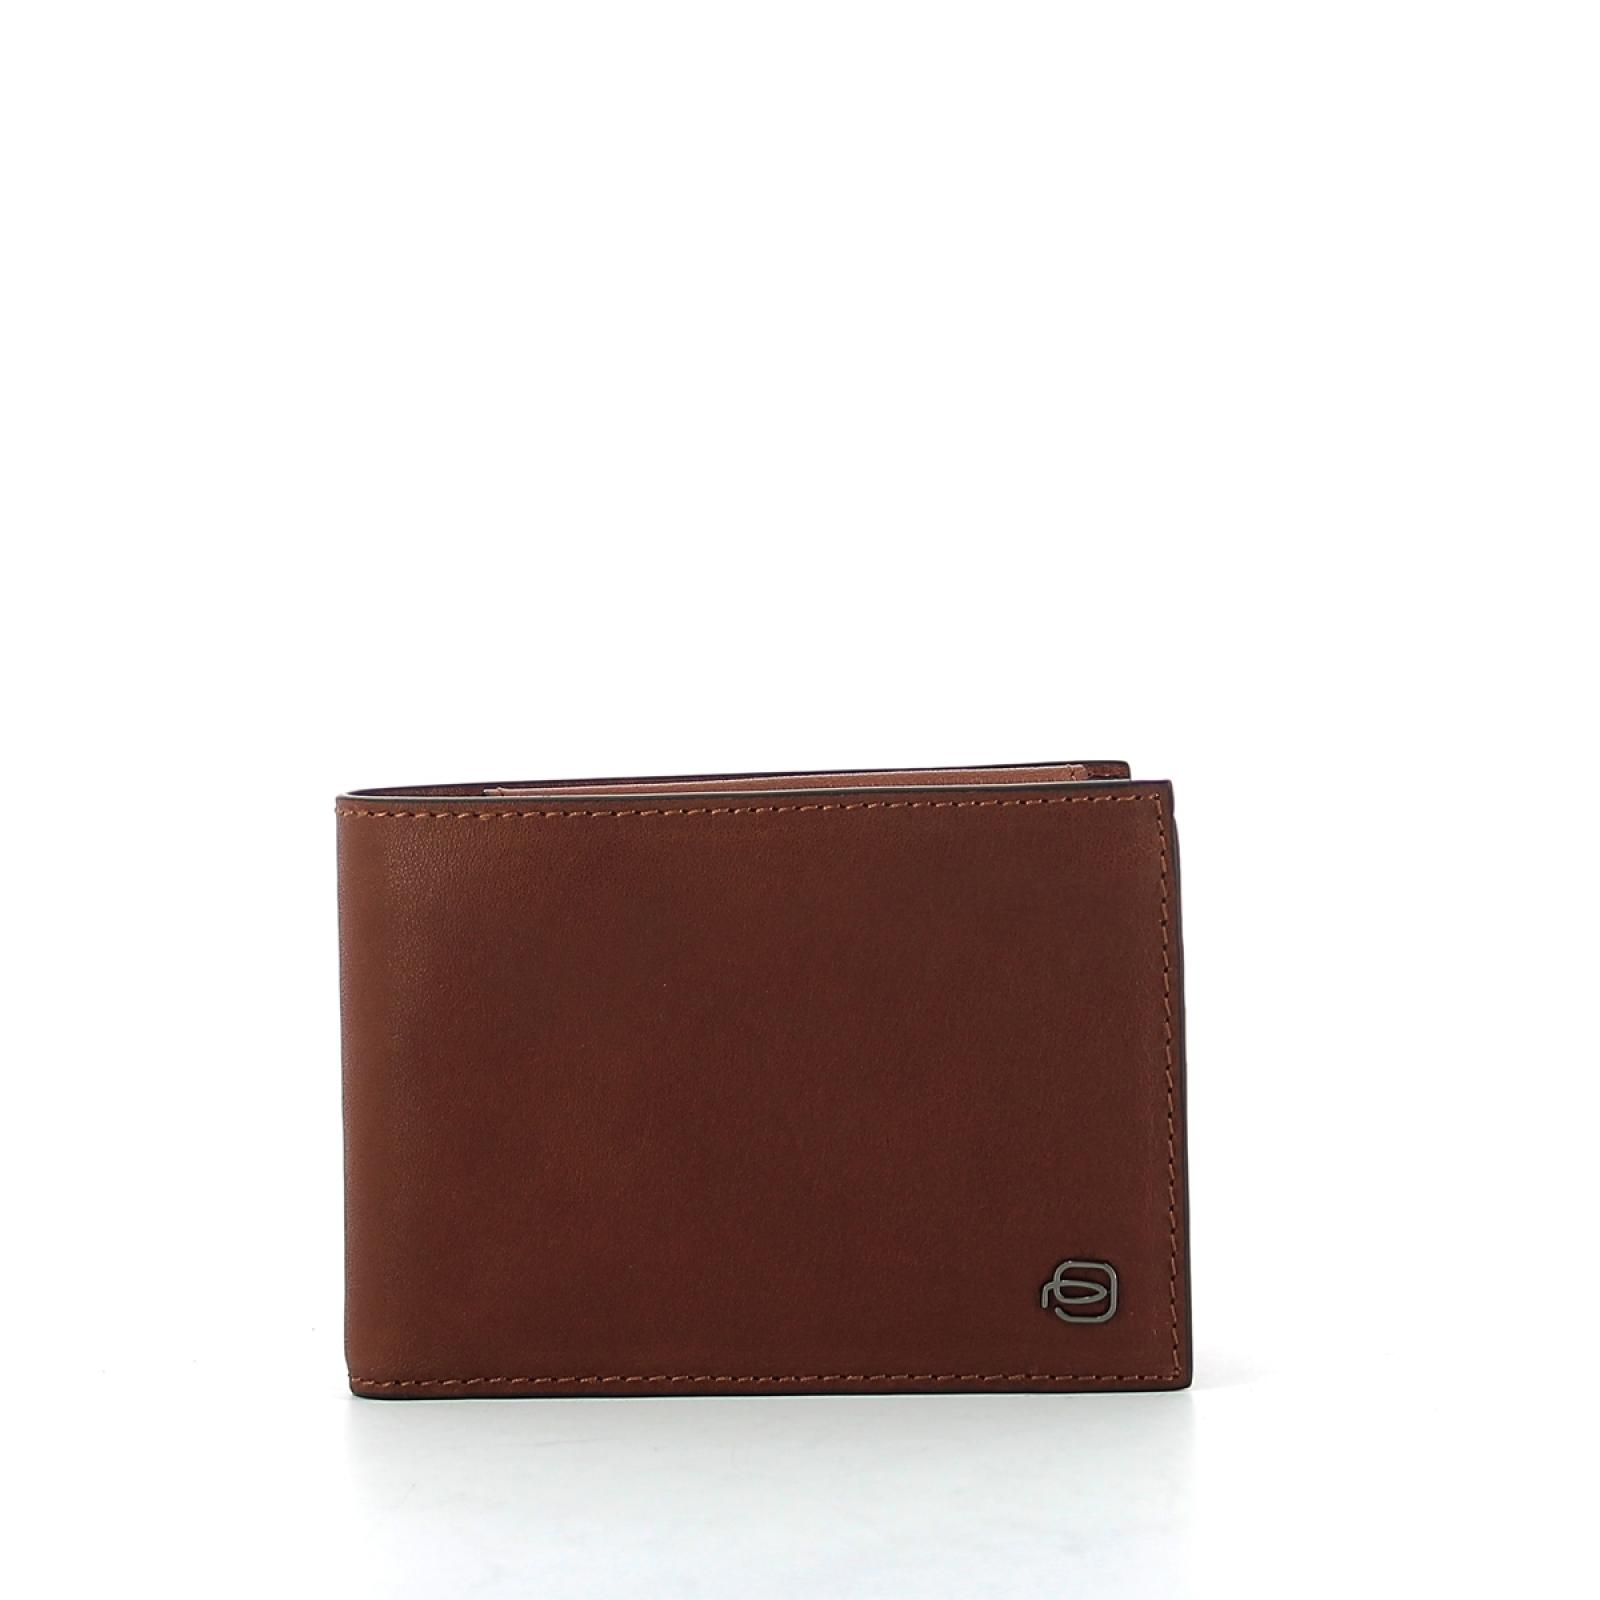 Wallet with coin pouch Black Square-CUOIO-UN